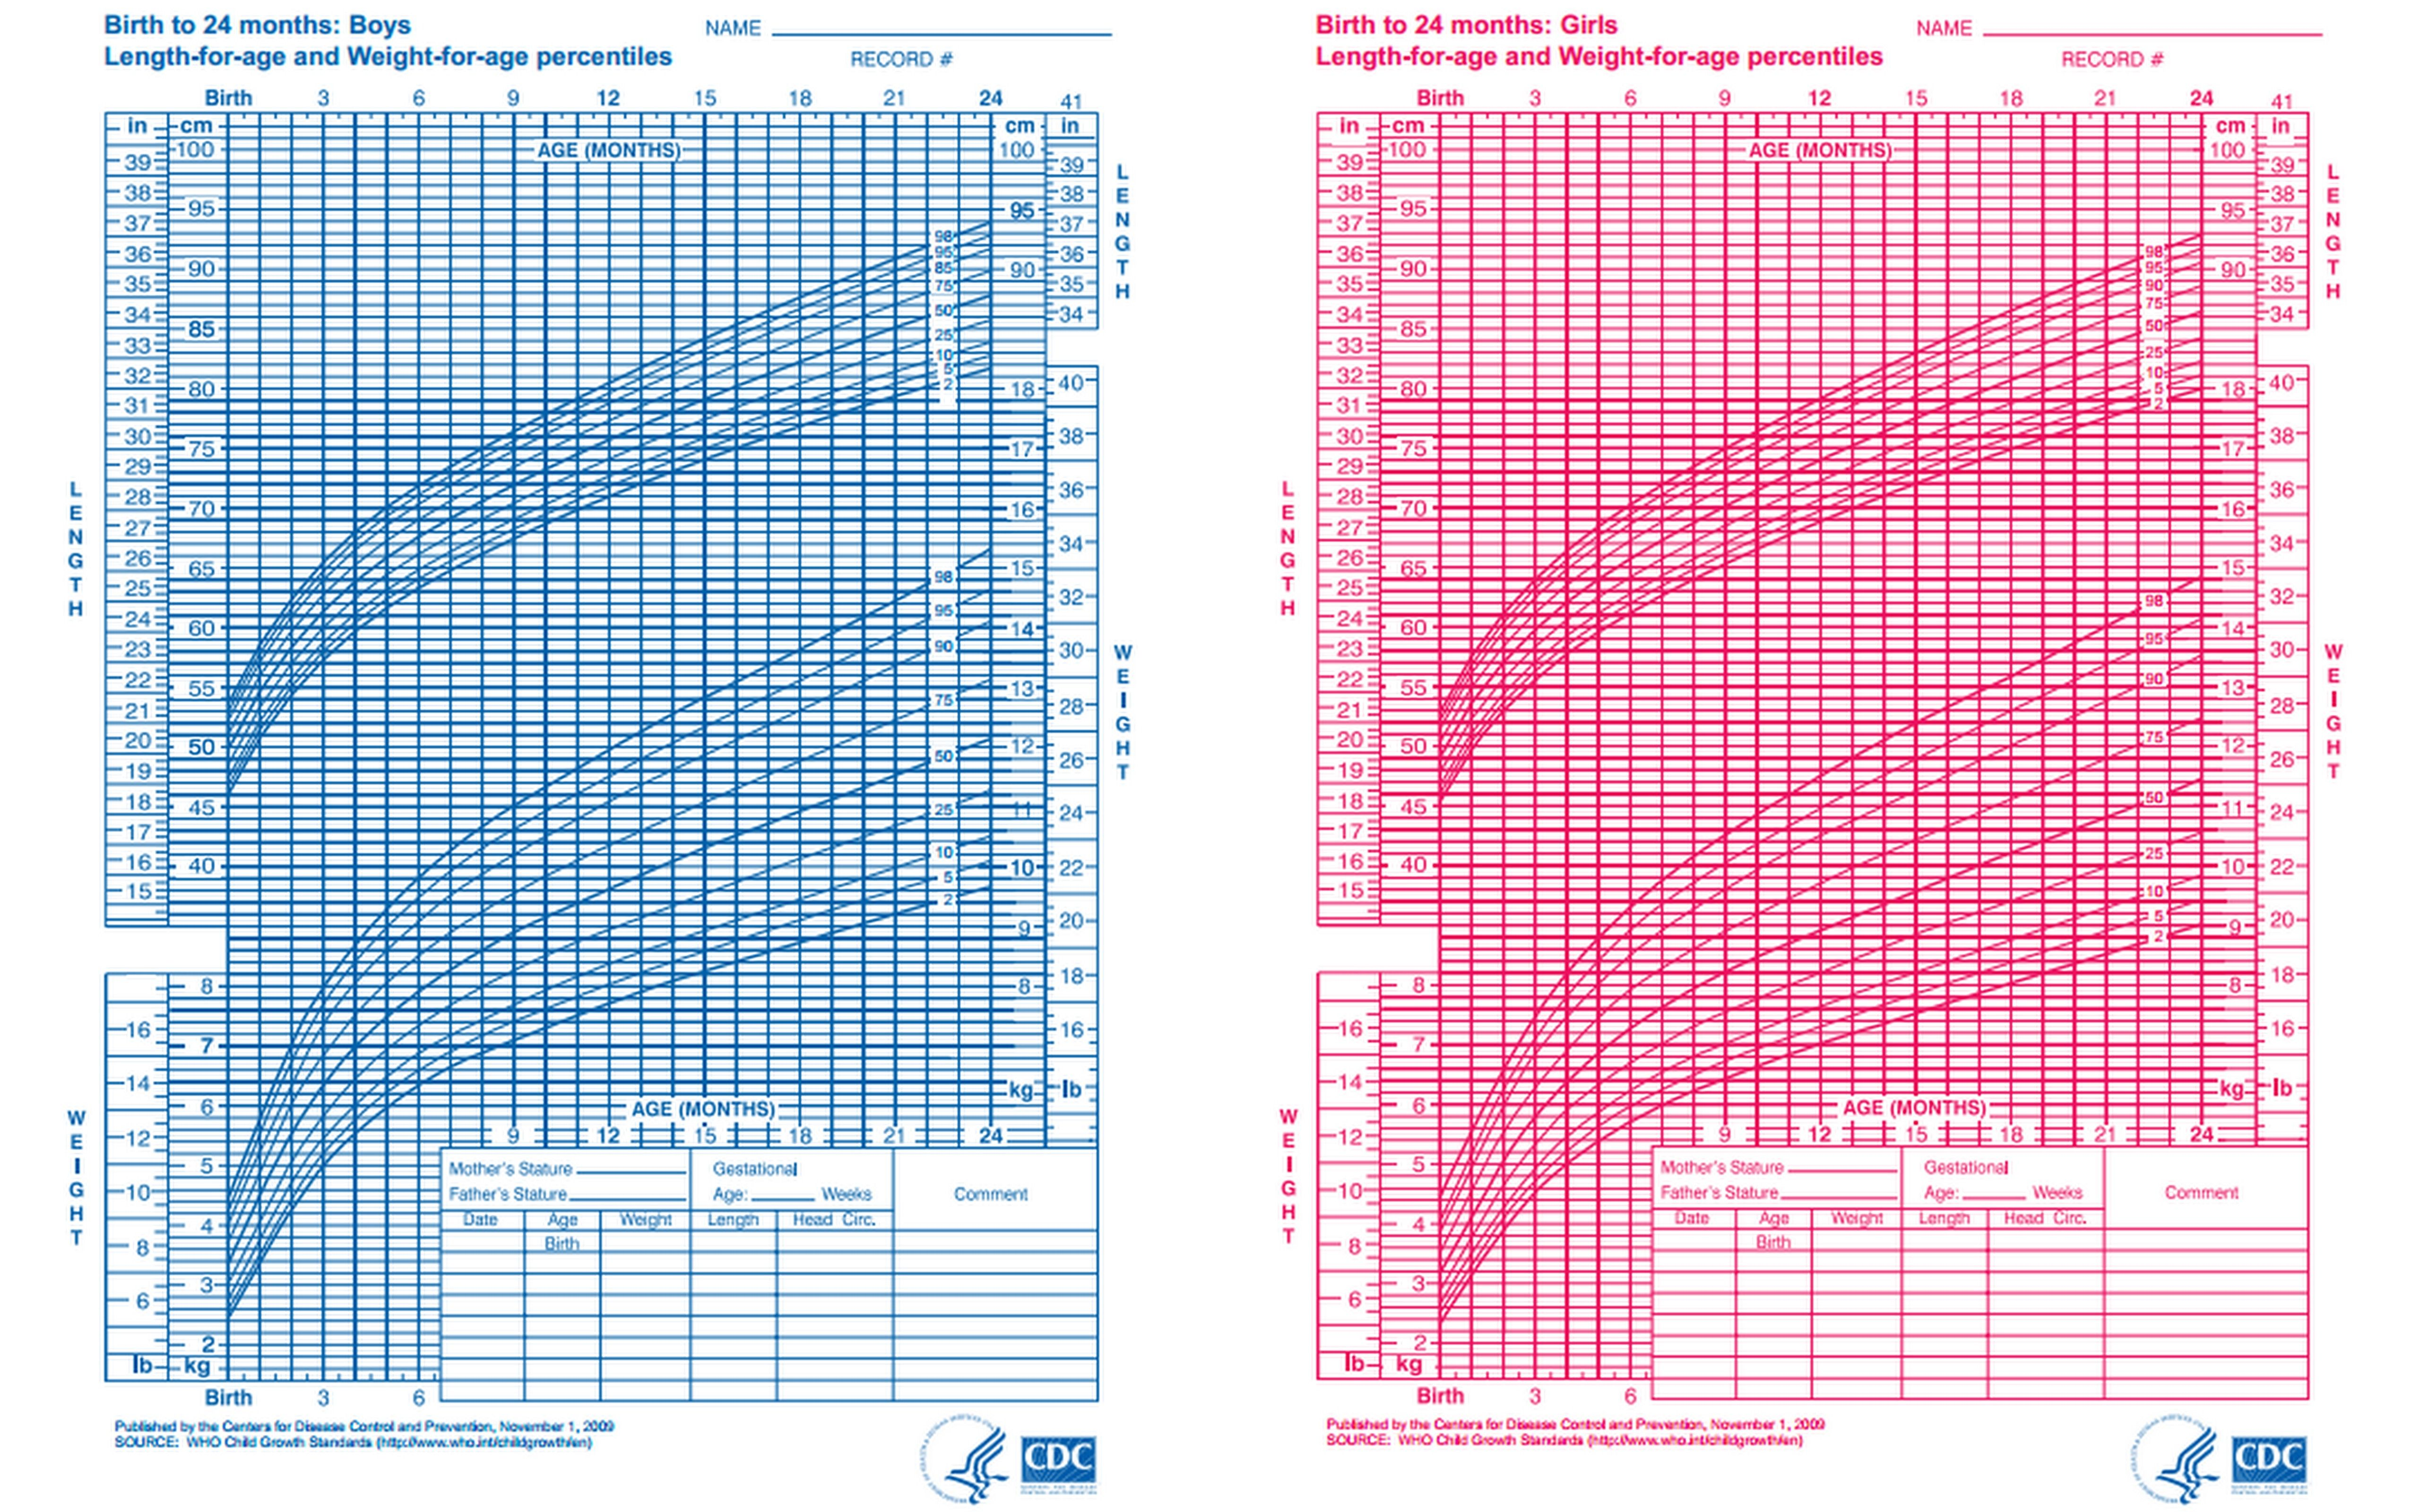 Centers for disease control and prevention cdc charts based on centers for disease control and prevention cdc charts based on world health organization who growth standards for infant boys nvjuhfo Choice Image